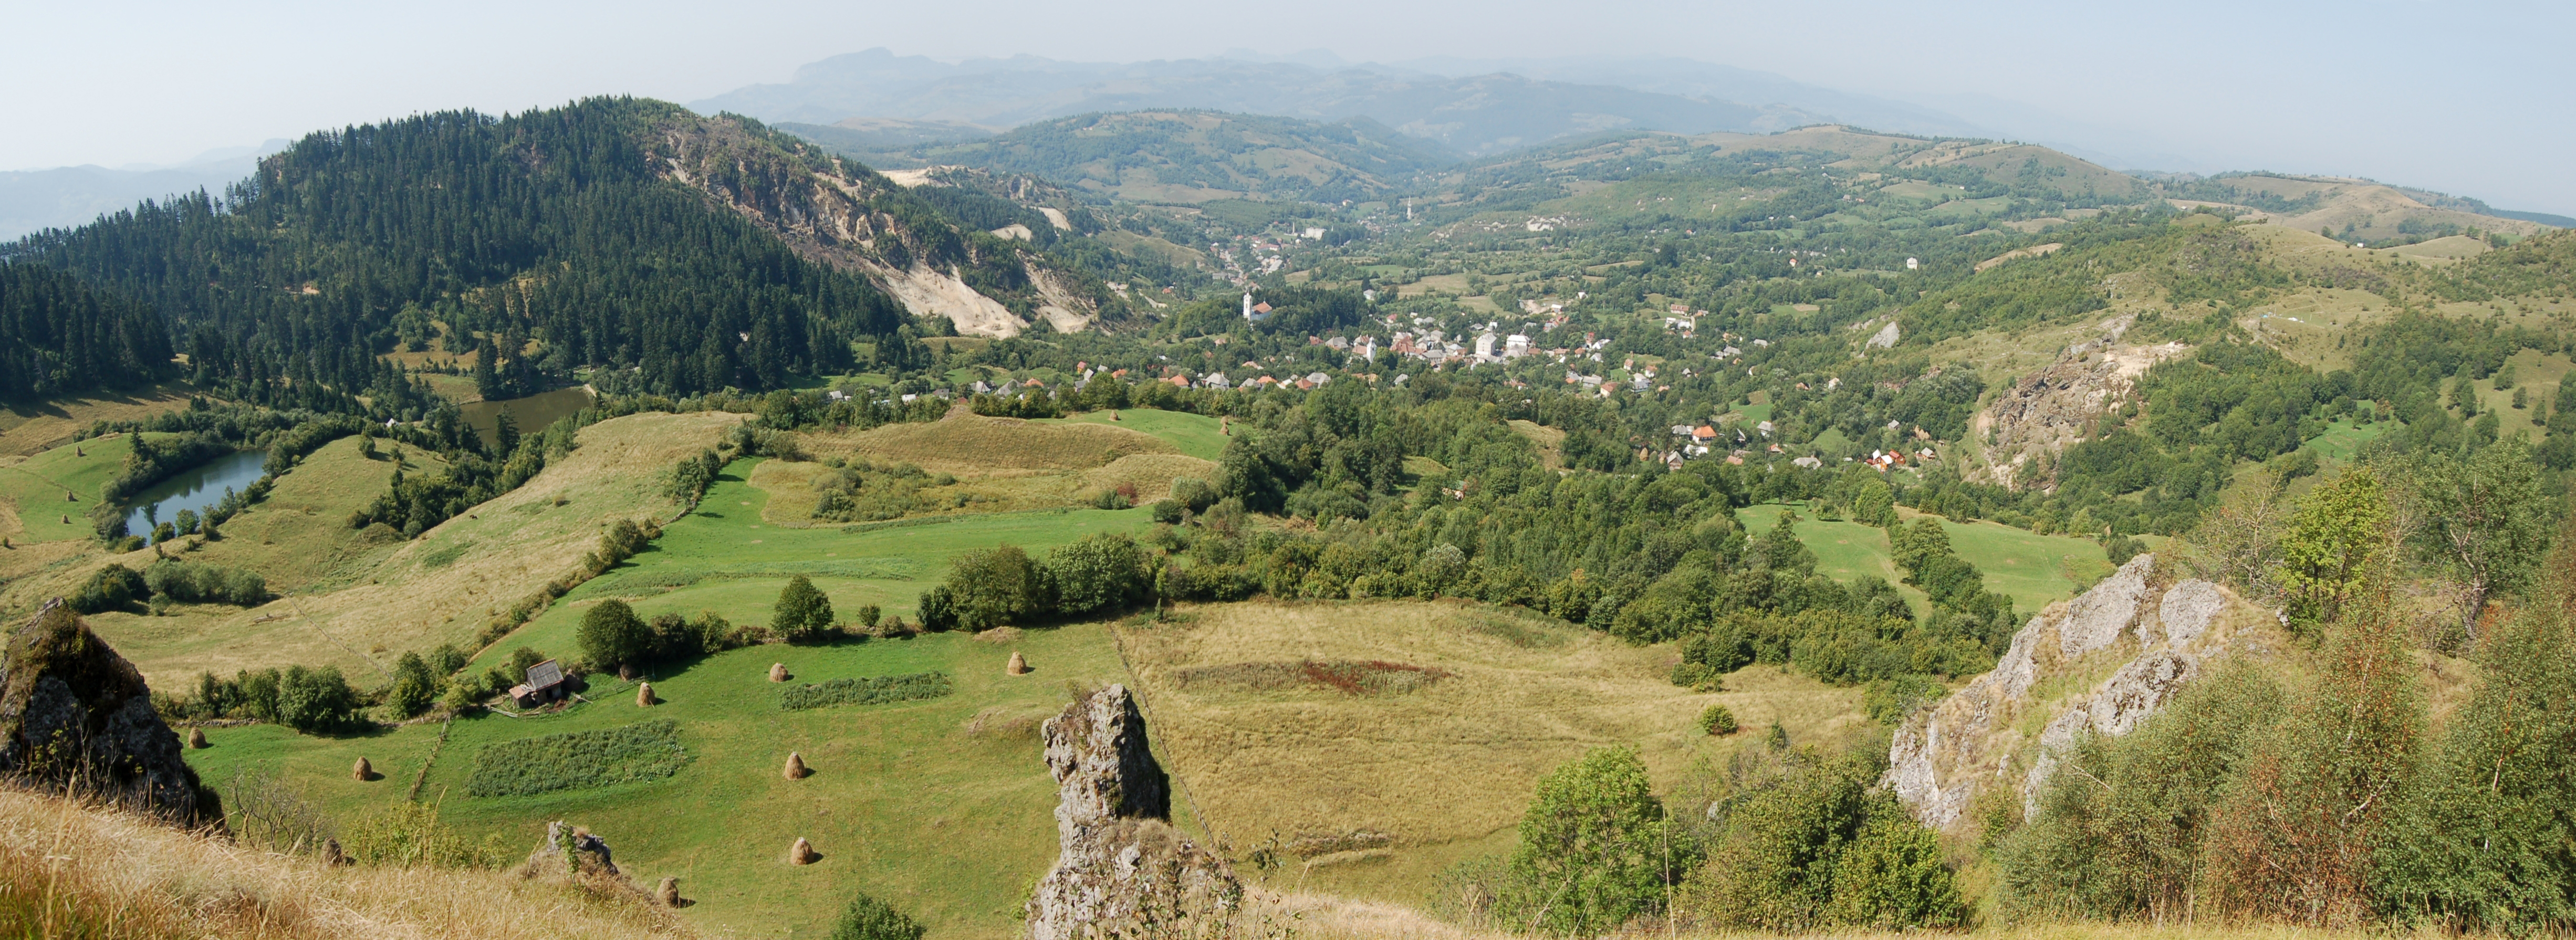 The historic mining landscape of Roşia Montană was listed as one of 'The 7 Most Endangered' heritage sites in Europe in 2013. Photo: Petru Mortu